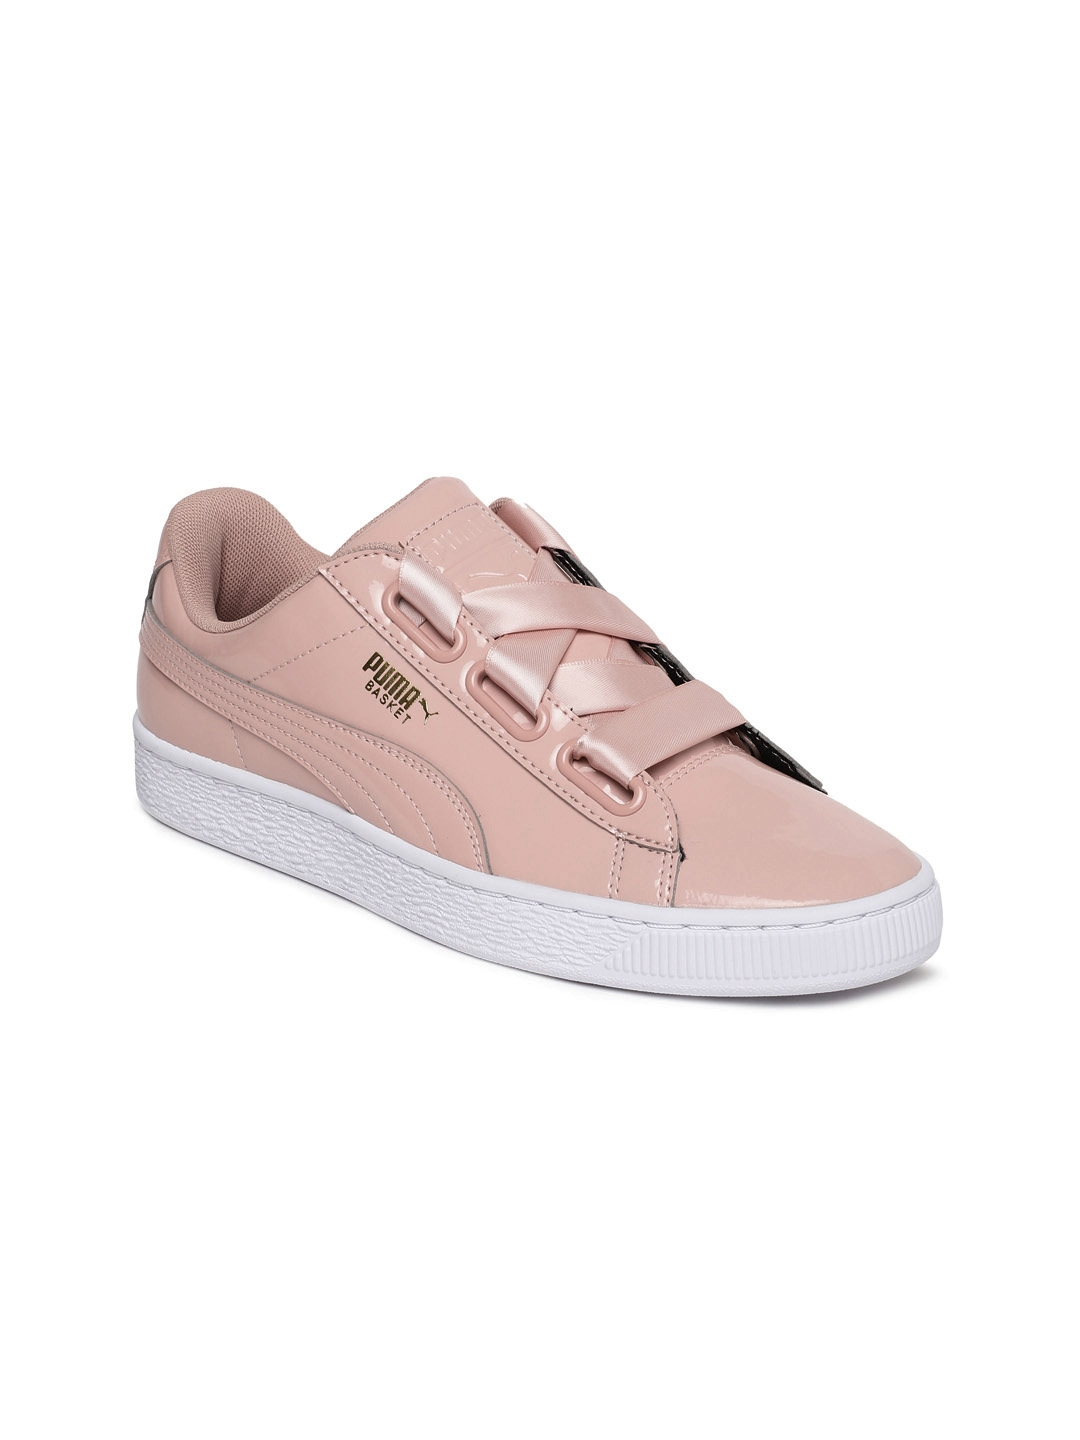 Buy puma women pink basket heart patent leather sneakers casual jpg  1080x1440 Converse patent leather pumas 894851aa4